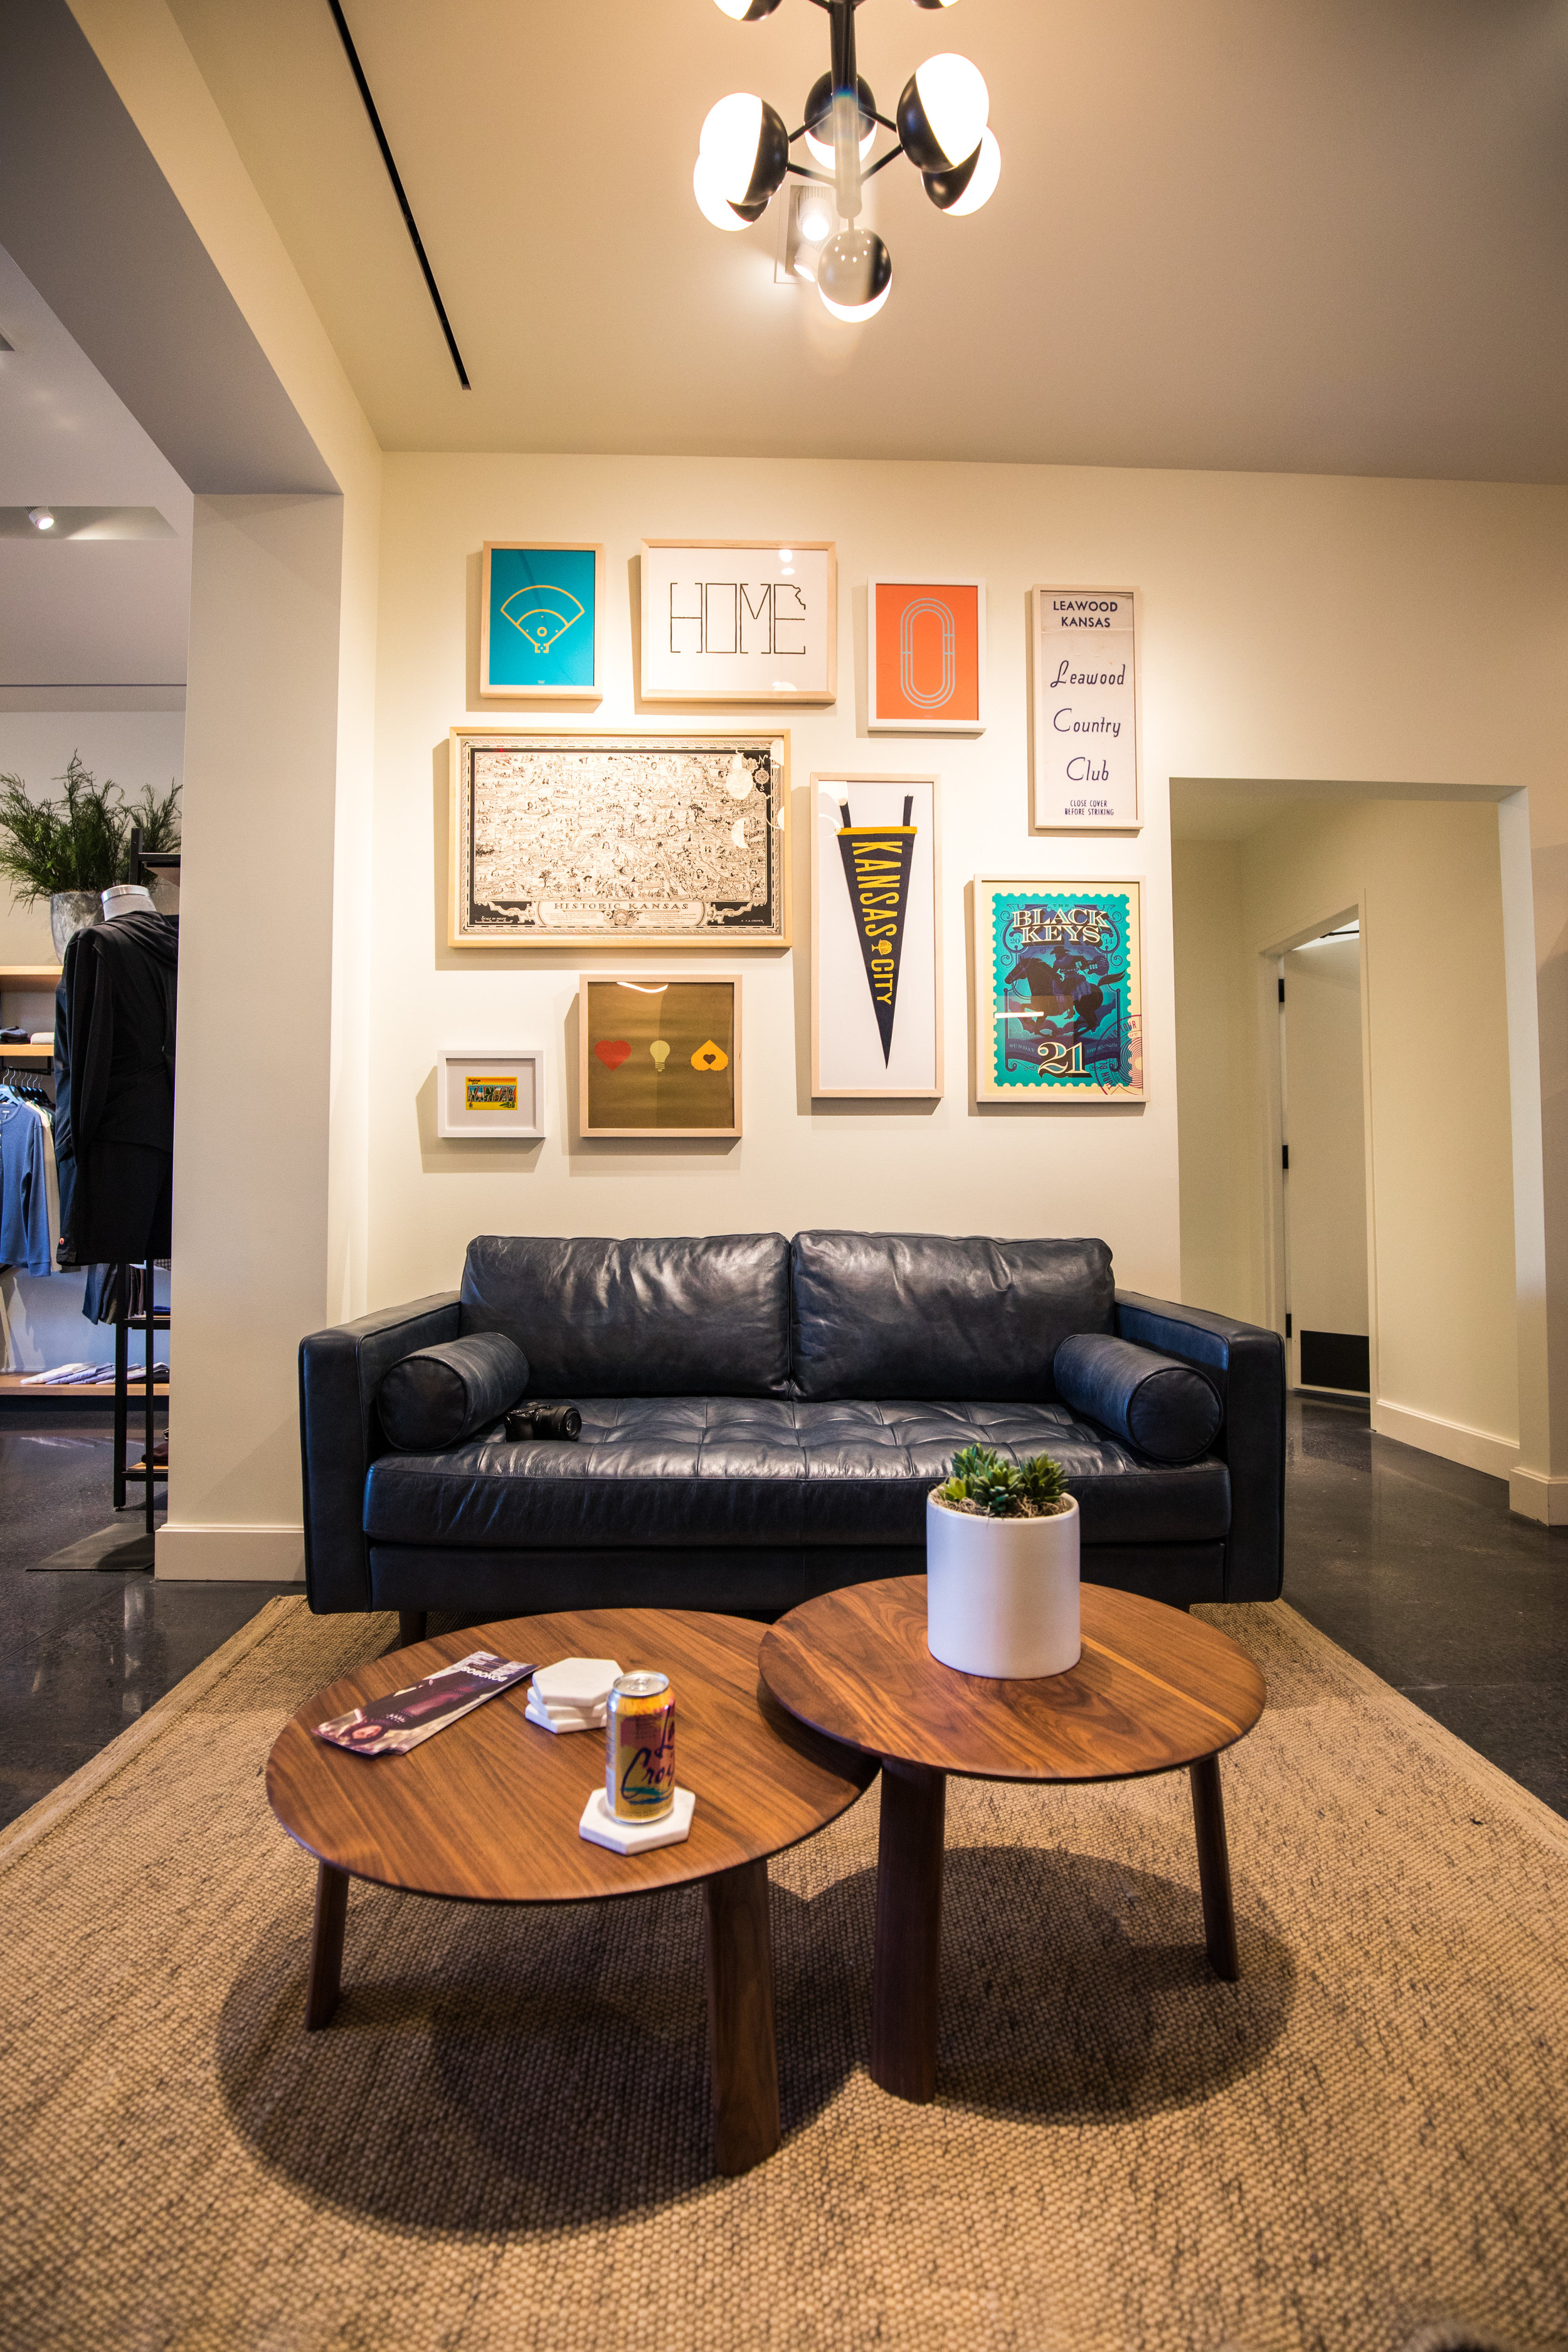 The Lounge - A big comfy couch sits right outside of the fitting rooms so take a friend or two!